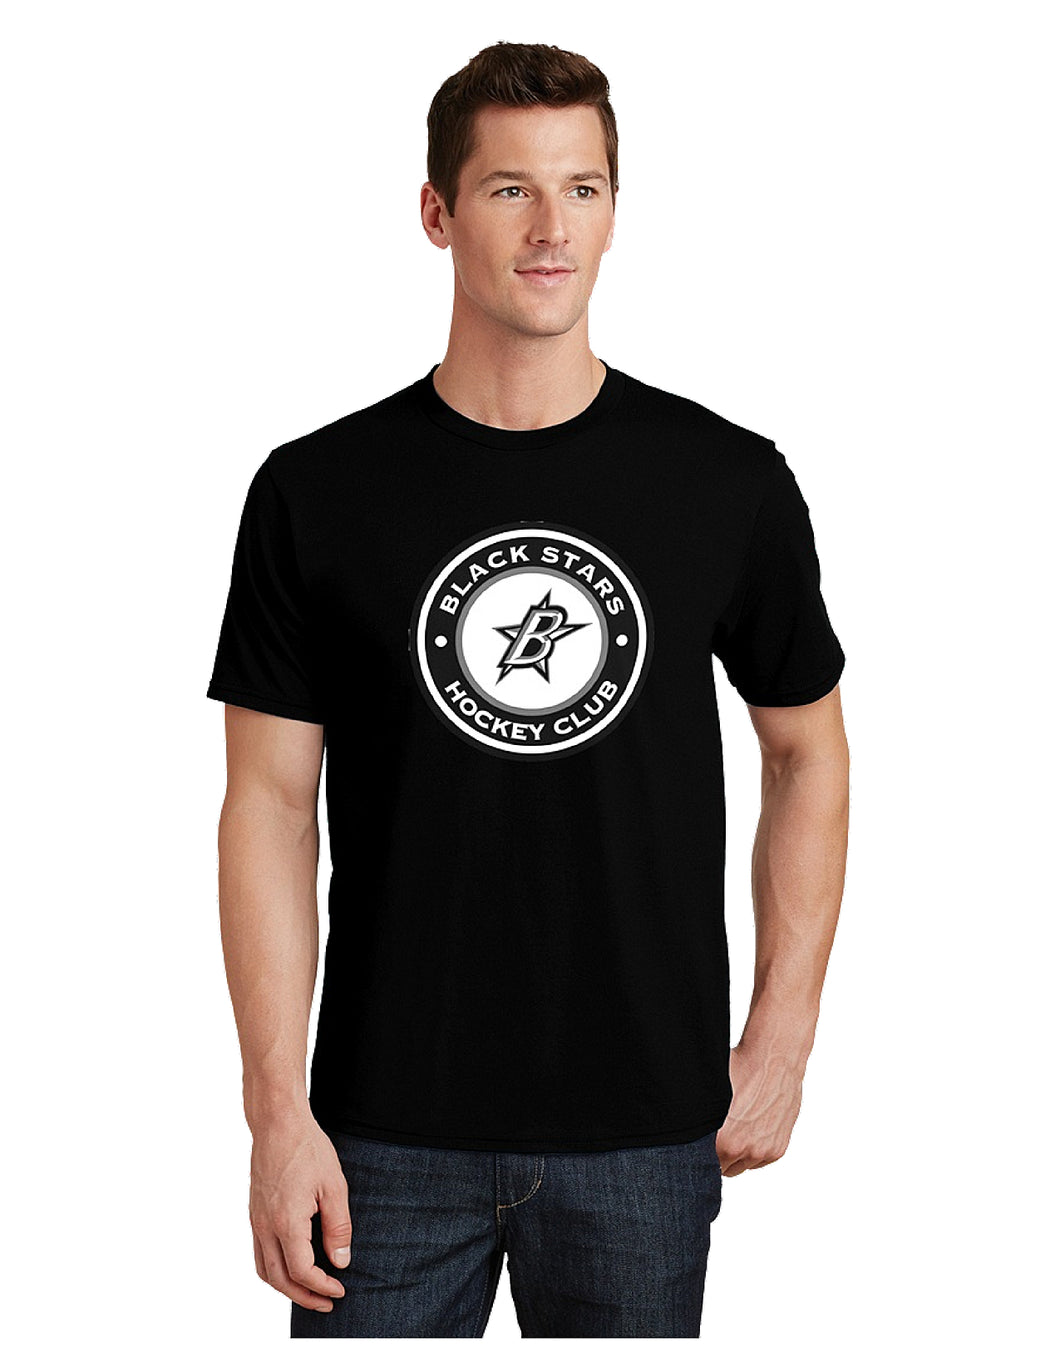 Black Stars Port & Company® Fan Favorite™ Tee Black With Screen Printed Black Stars Hockey Club Logo (PC450)